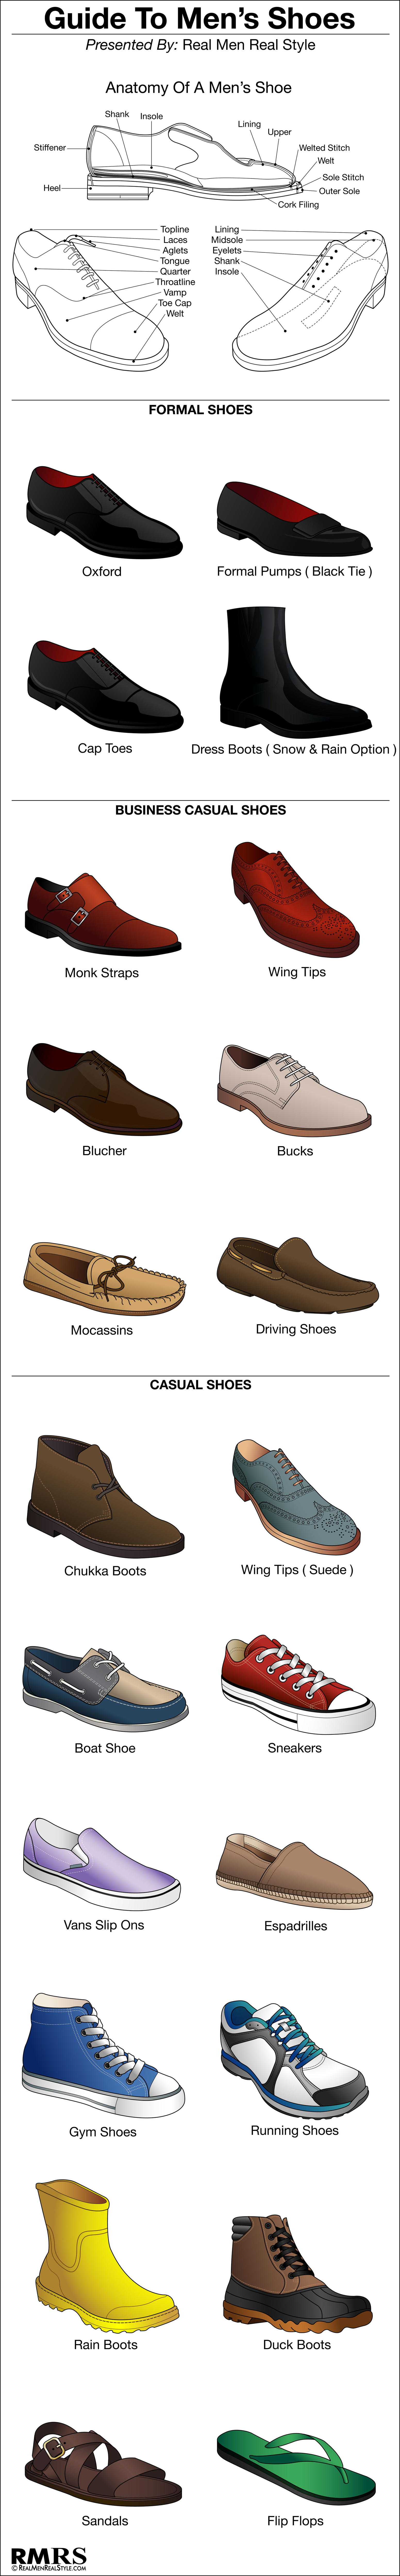 Shoe infographic A Man's Guide to Style